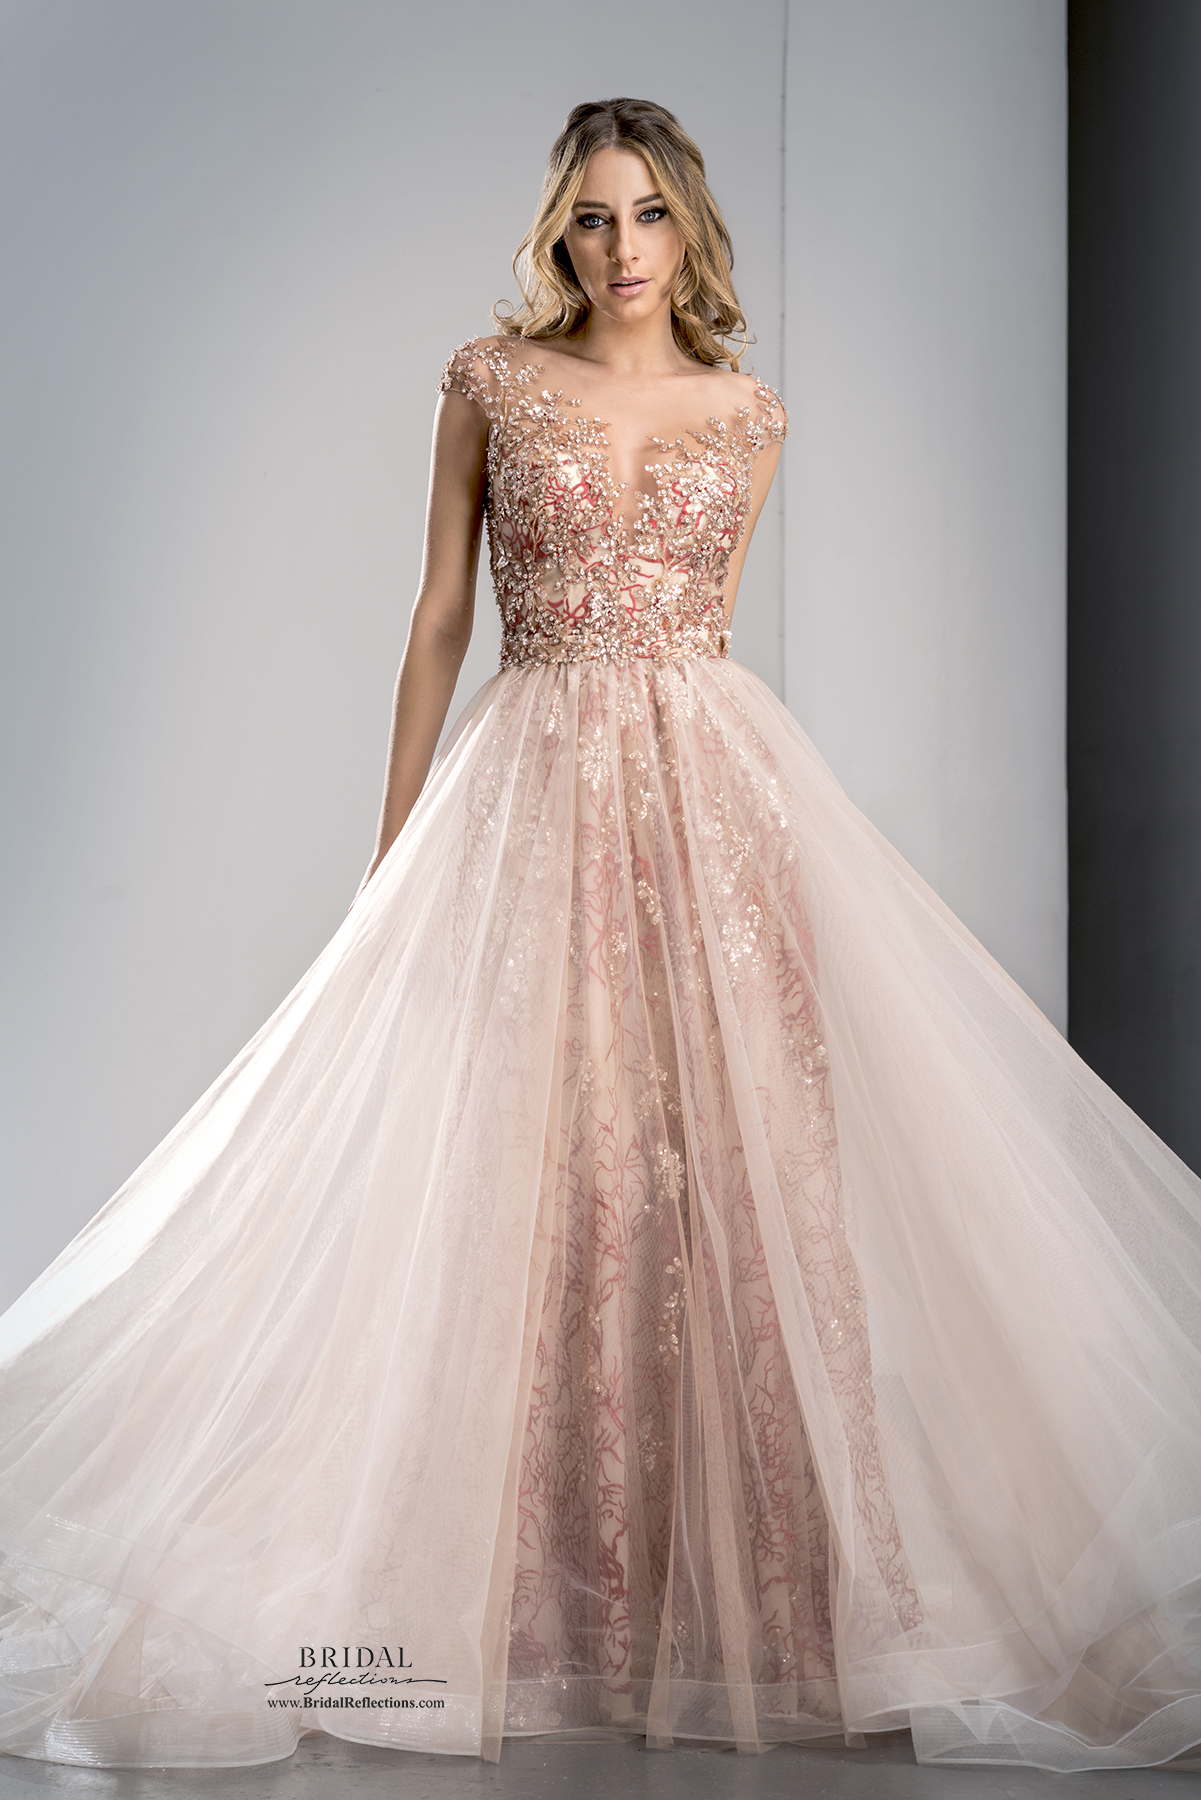 Ysa Makino Wedding Evening Dress And Gowns Collection